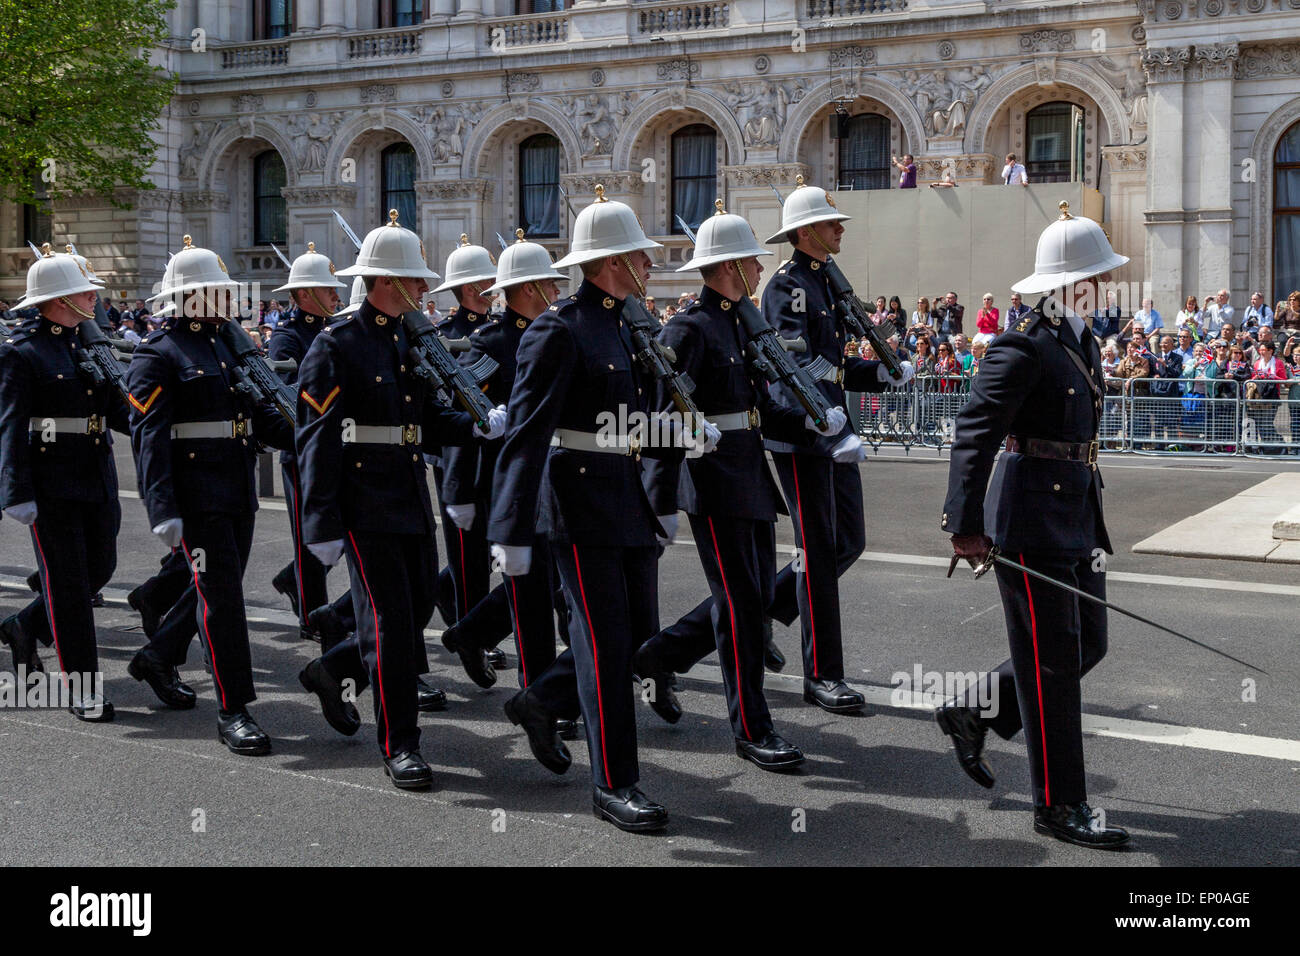 A Service Attachment Of The Royal Marines March Past The Cenotaph As Part Of The 70th Anniversary of VE Day, London, - Stock Image